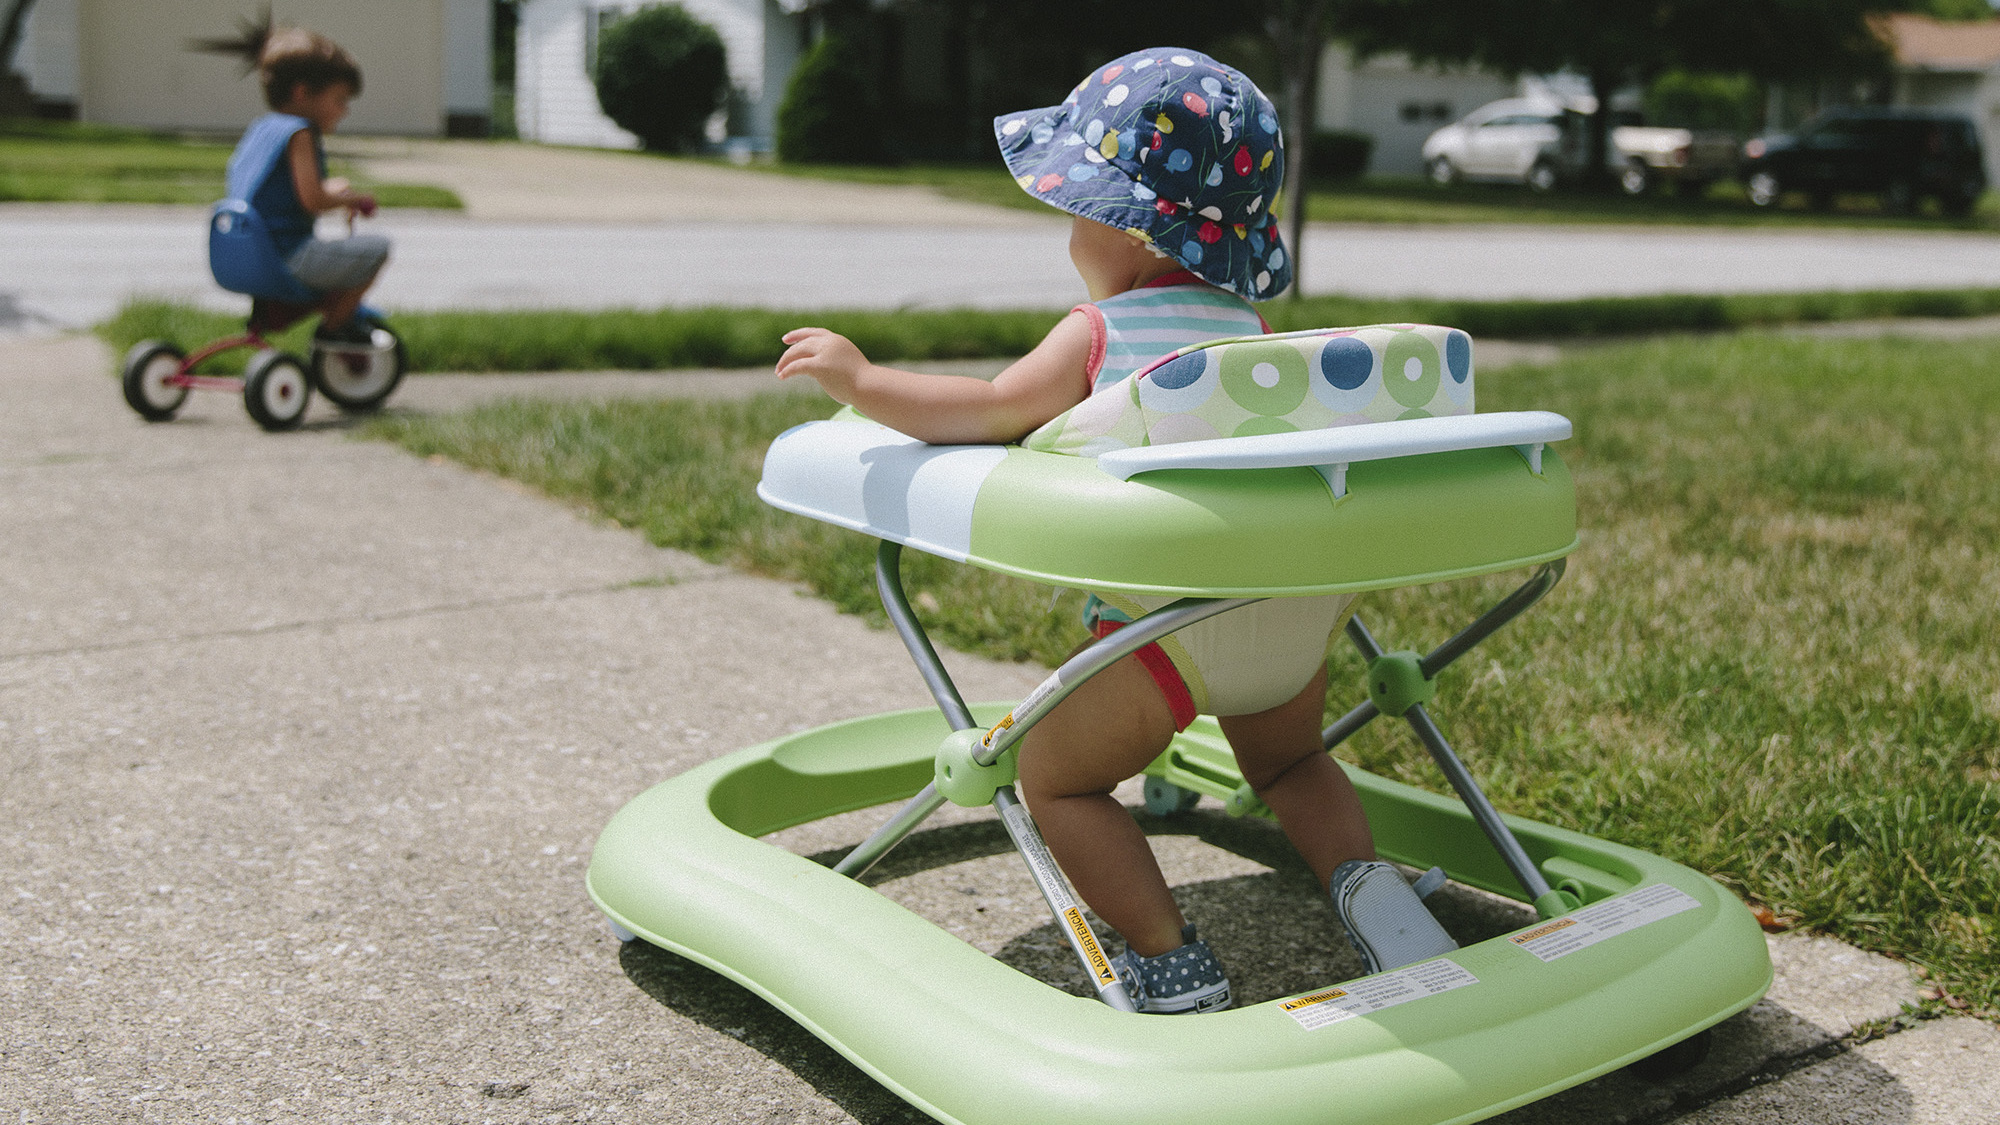 More than 9,000 US children are injured using infant walkers every year